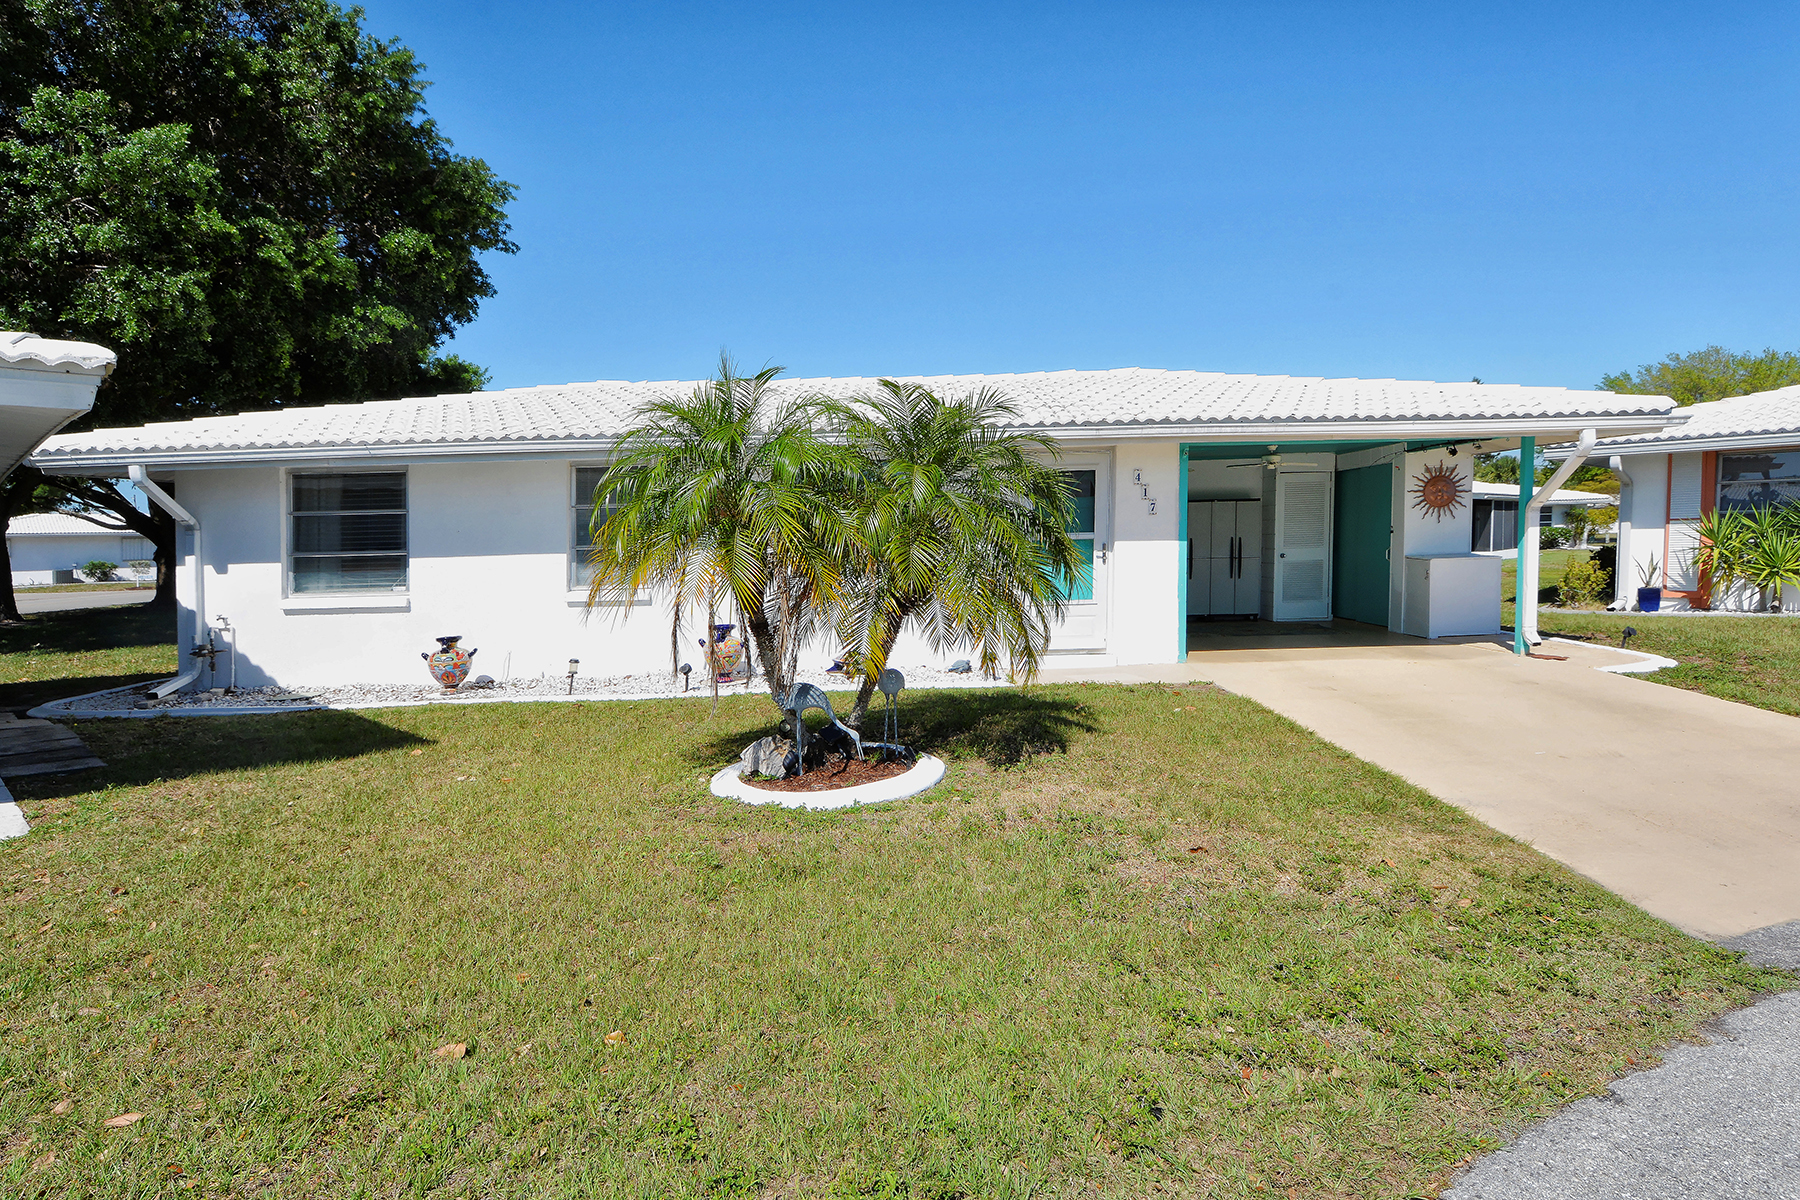 Townhouse for Sale at CIRCLE WOODS 417 Circlewood Dr K-7 Venice, Florida, 34293 United States